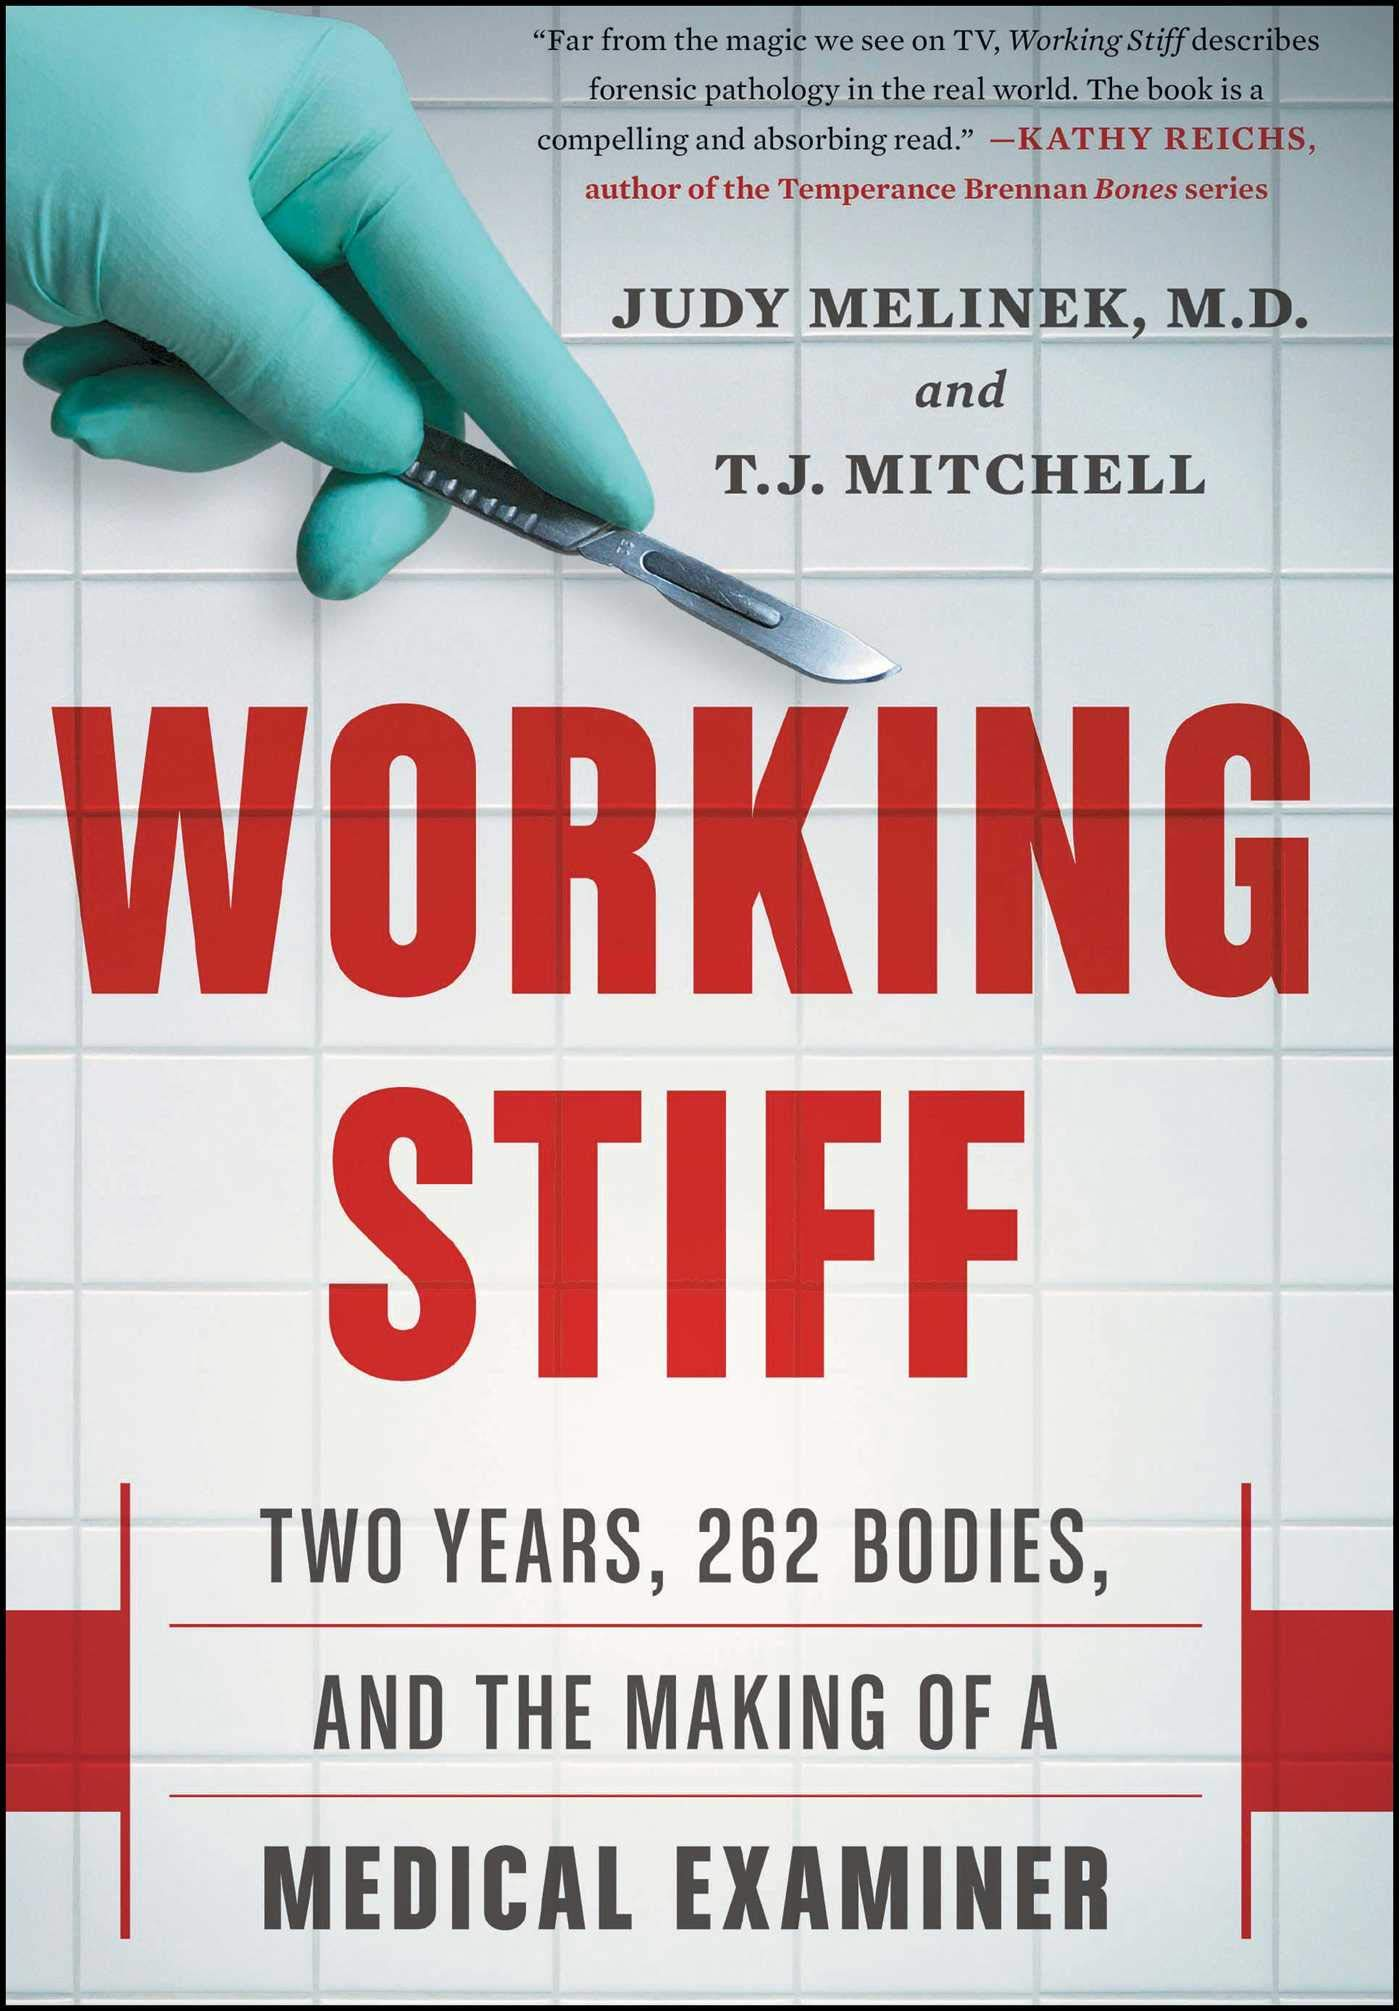 Working Stiff Two Years 262 Bodies And The Making Of A Medical Examiner Judy Melinek Md T J Mitchell 8601411314131 Amazon Com Books